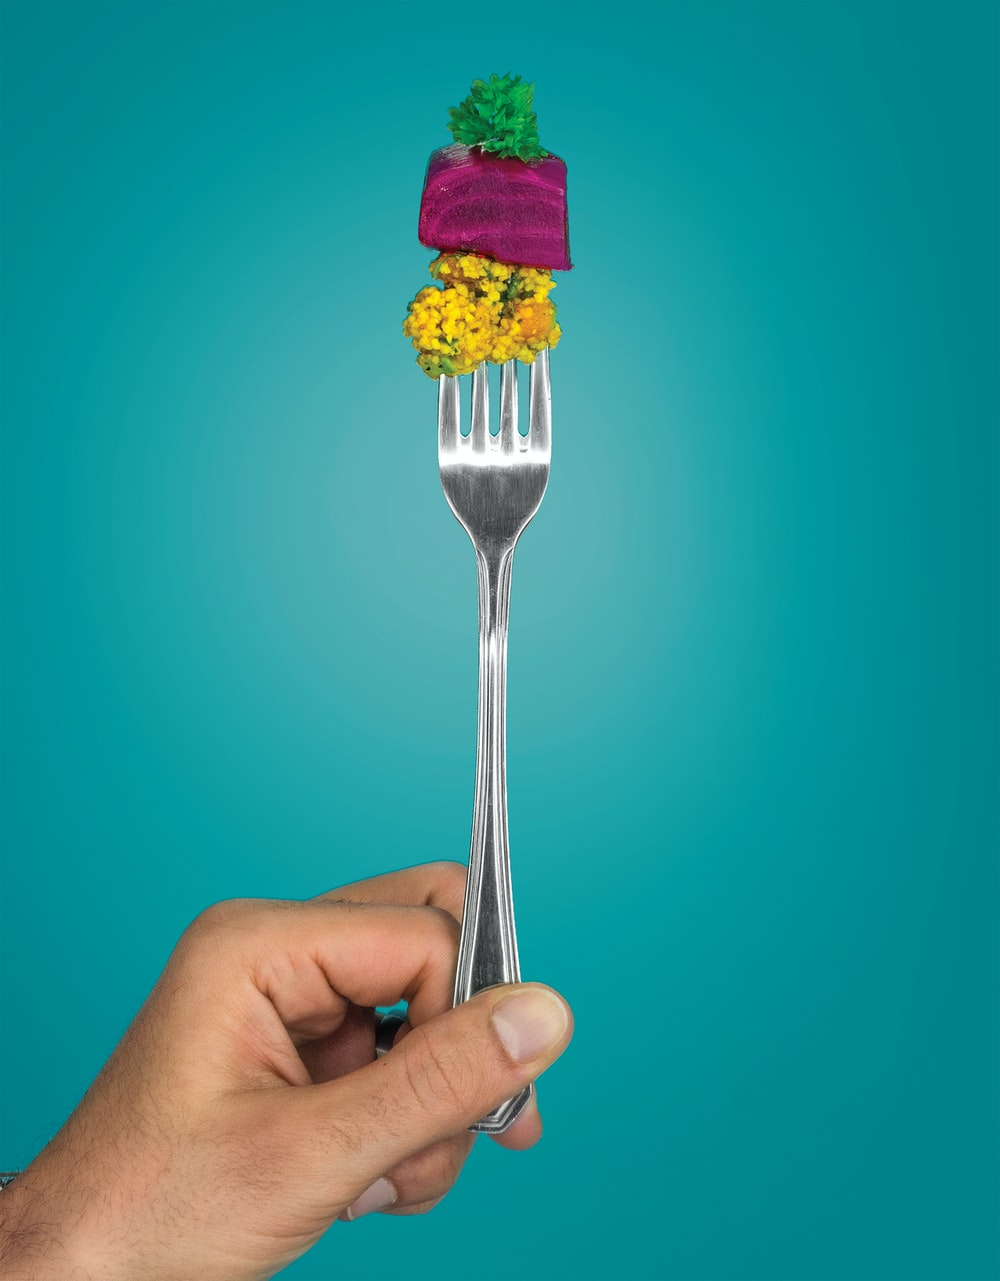 person holding stainless steel fork with purple and yellow ice cream